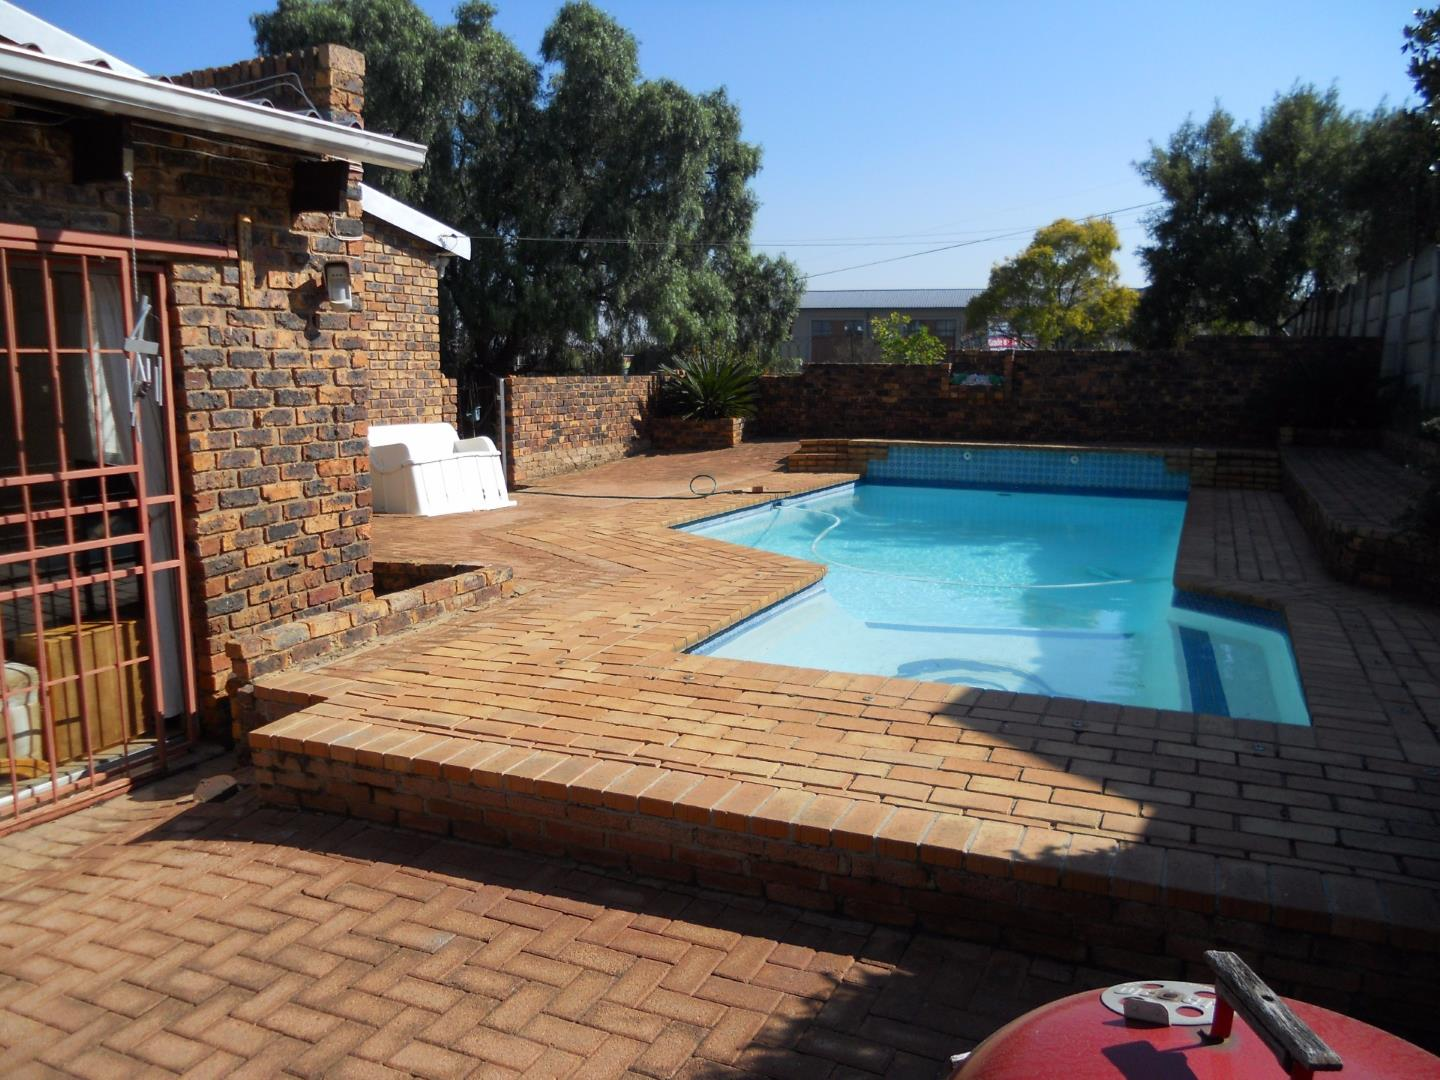 Johannesburg, Suideroord Property  | Houses For Sale Suideroord, Suideroord, House 4 bedrooms property for sale Price:1,640,000